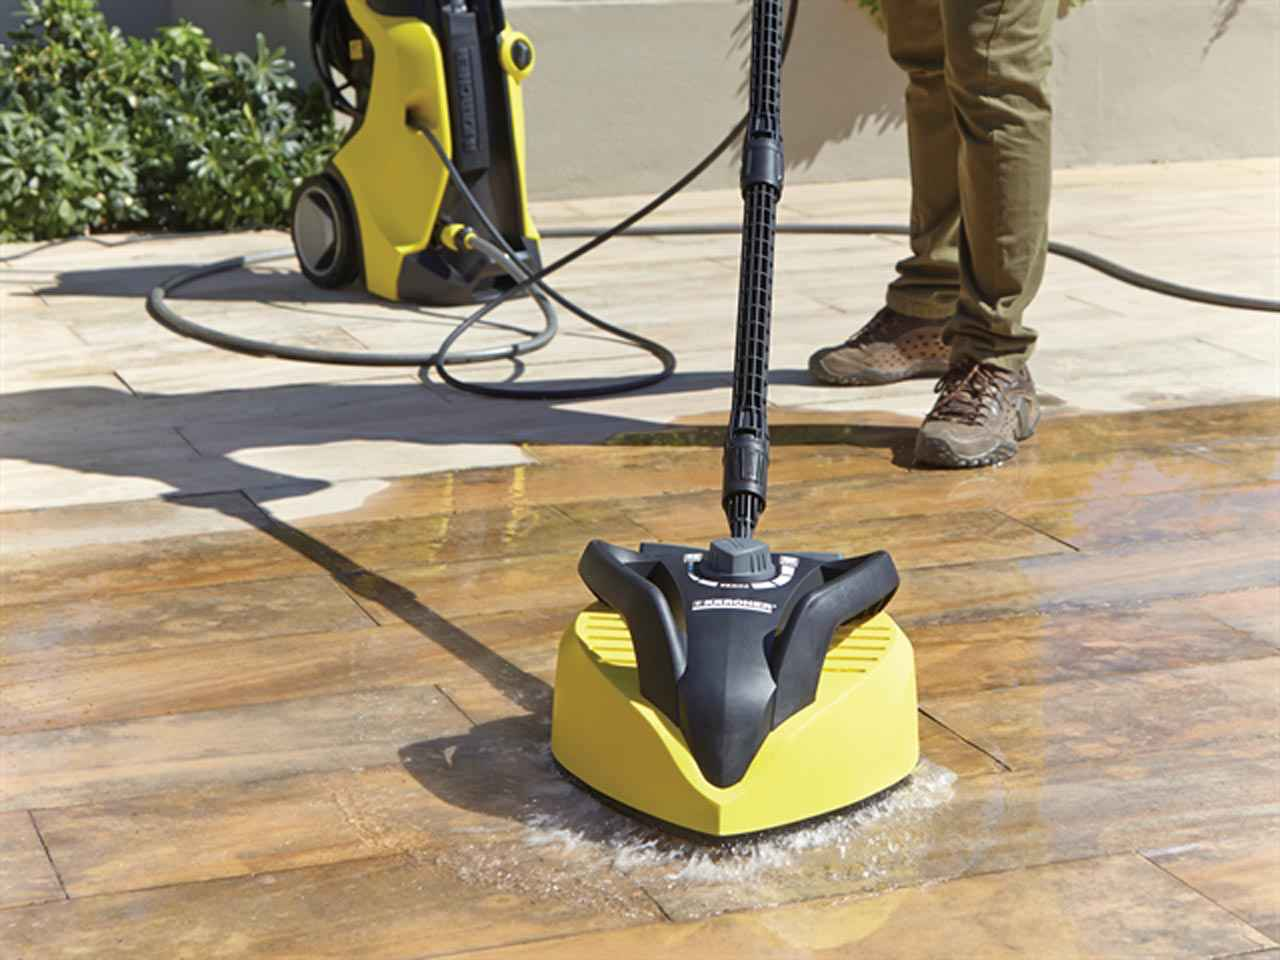 karcher kark7fcph k7 premium full control home pressure washer 160 bar 240v. Black Bedroom Furniture Sets. Home Design Ideas